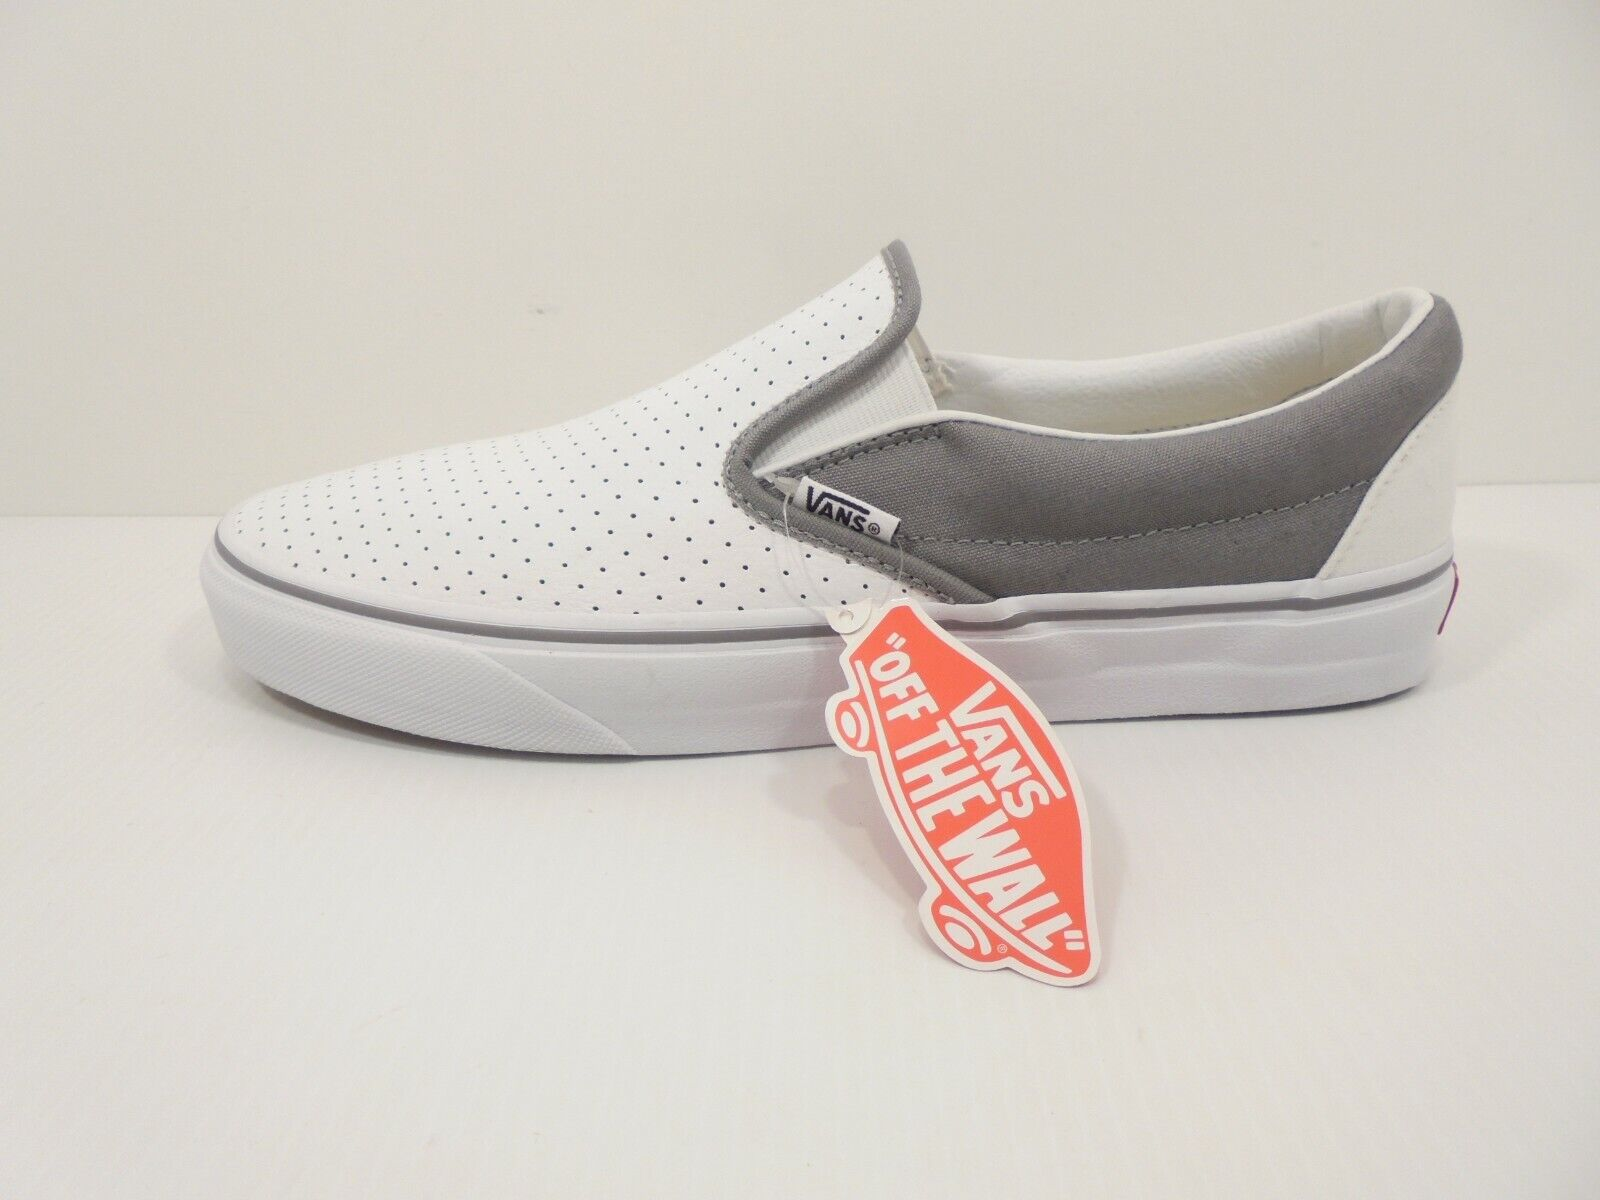 NEW! Mens Leather VANS Slip On Sneakers – Shoe Size US 11 M